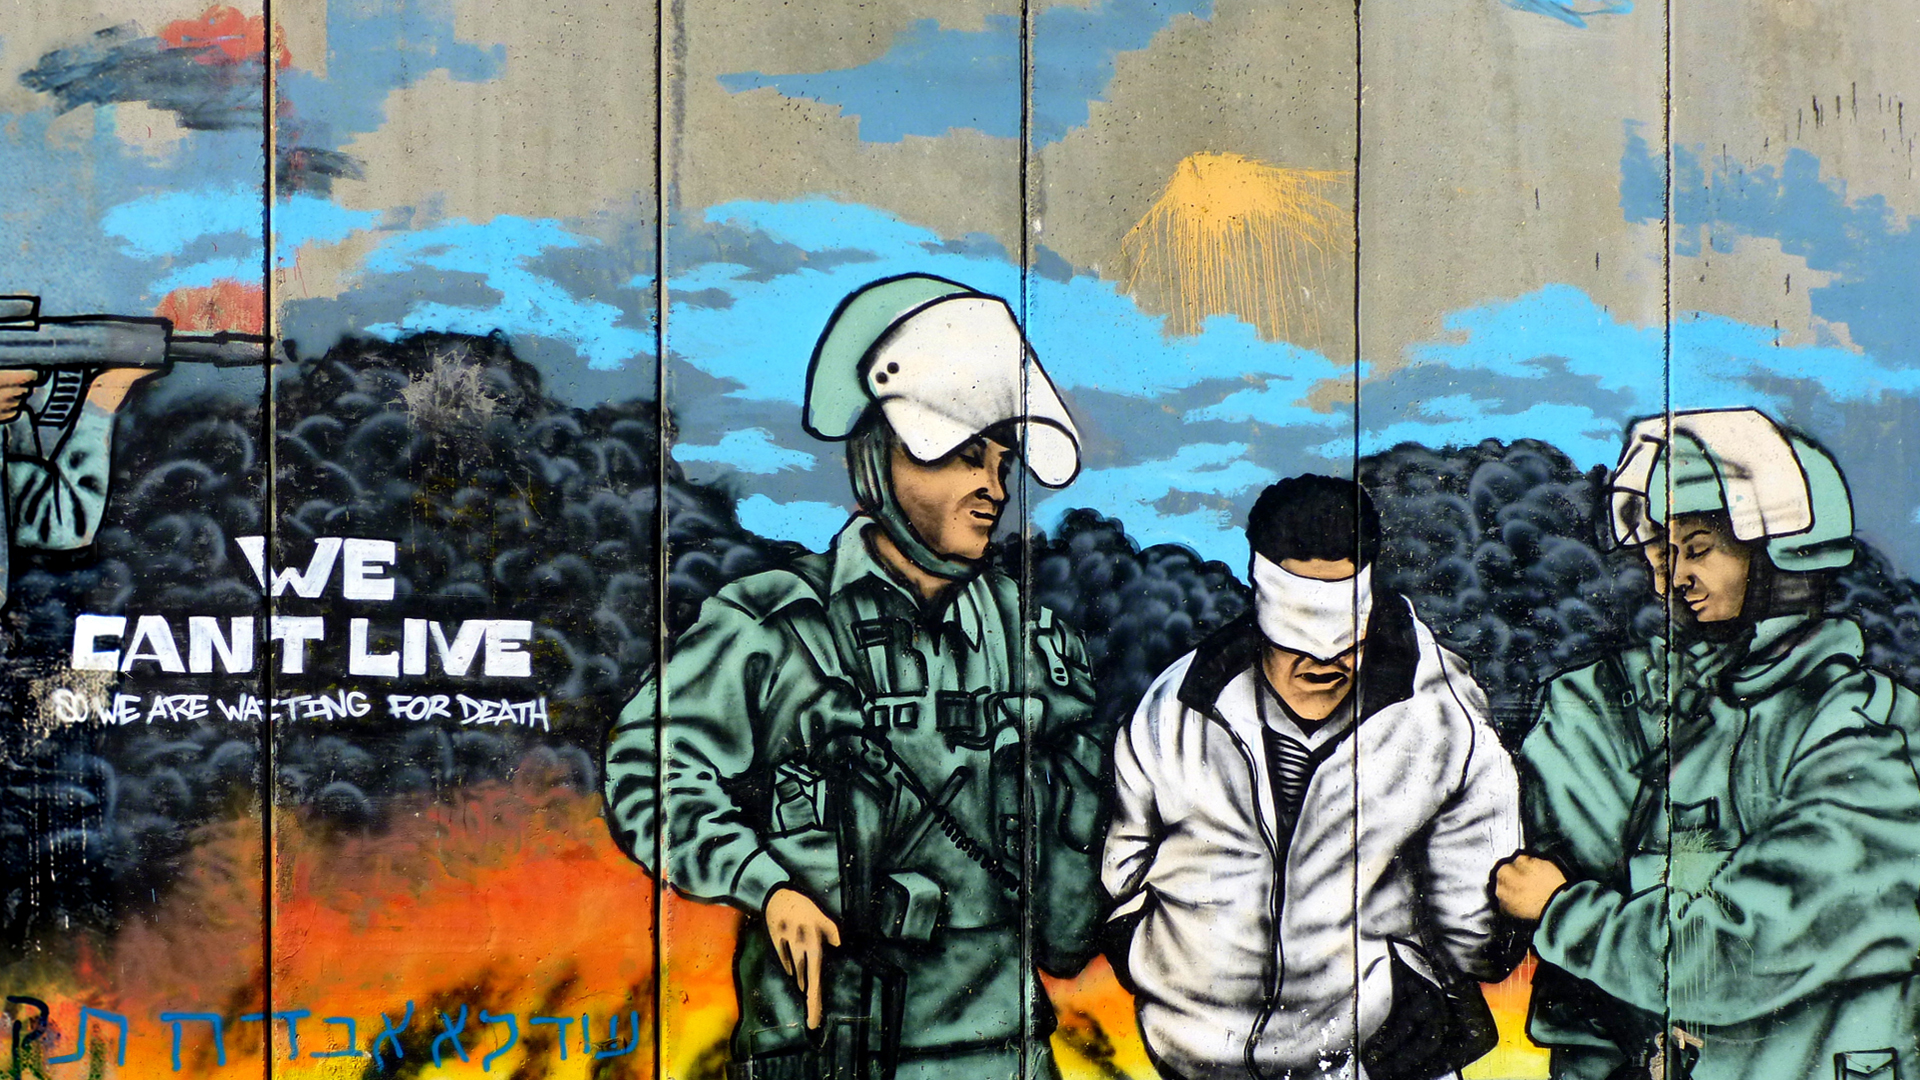 Graffiti on West Bank wall